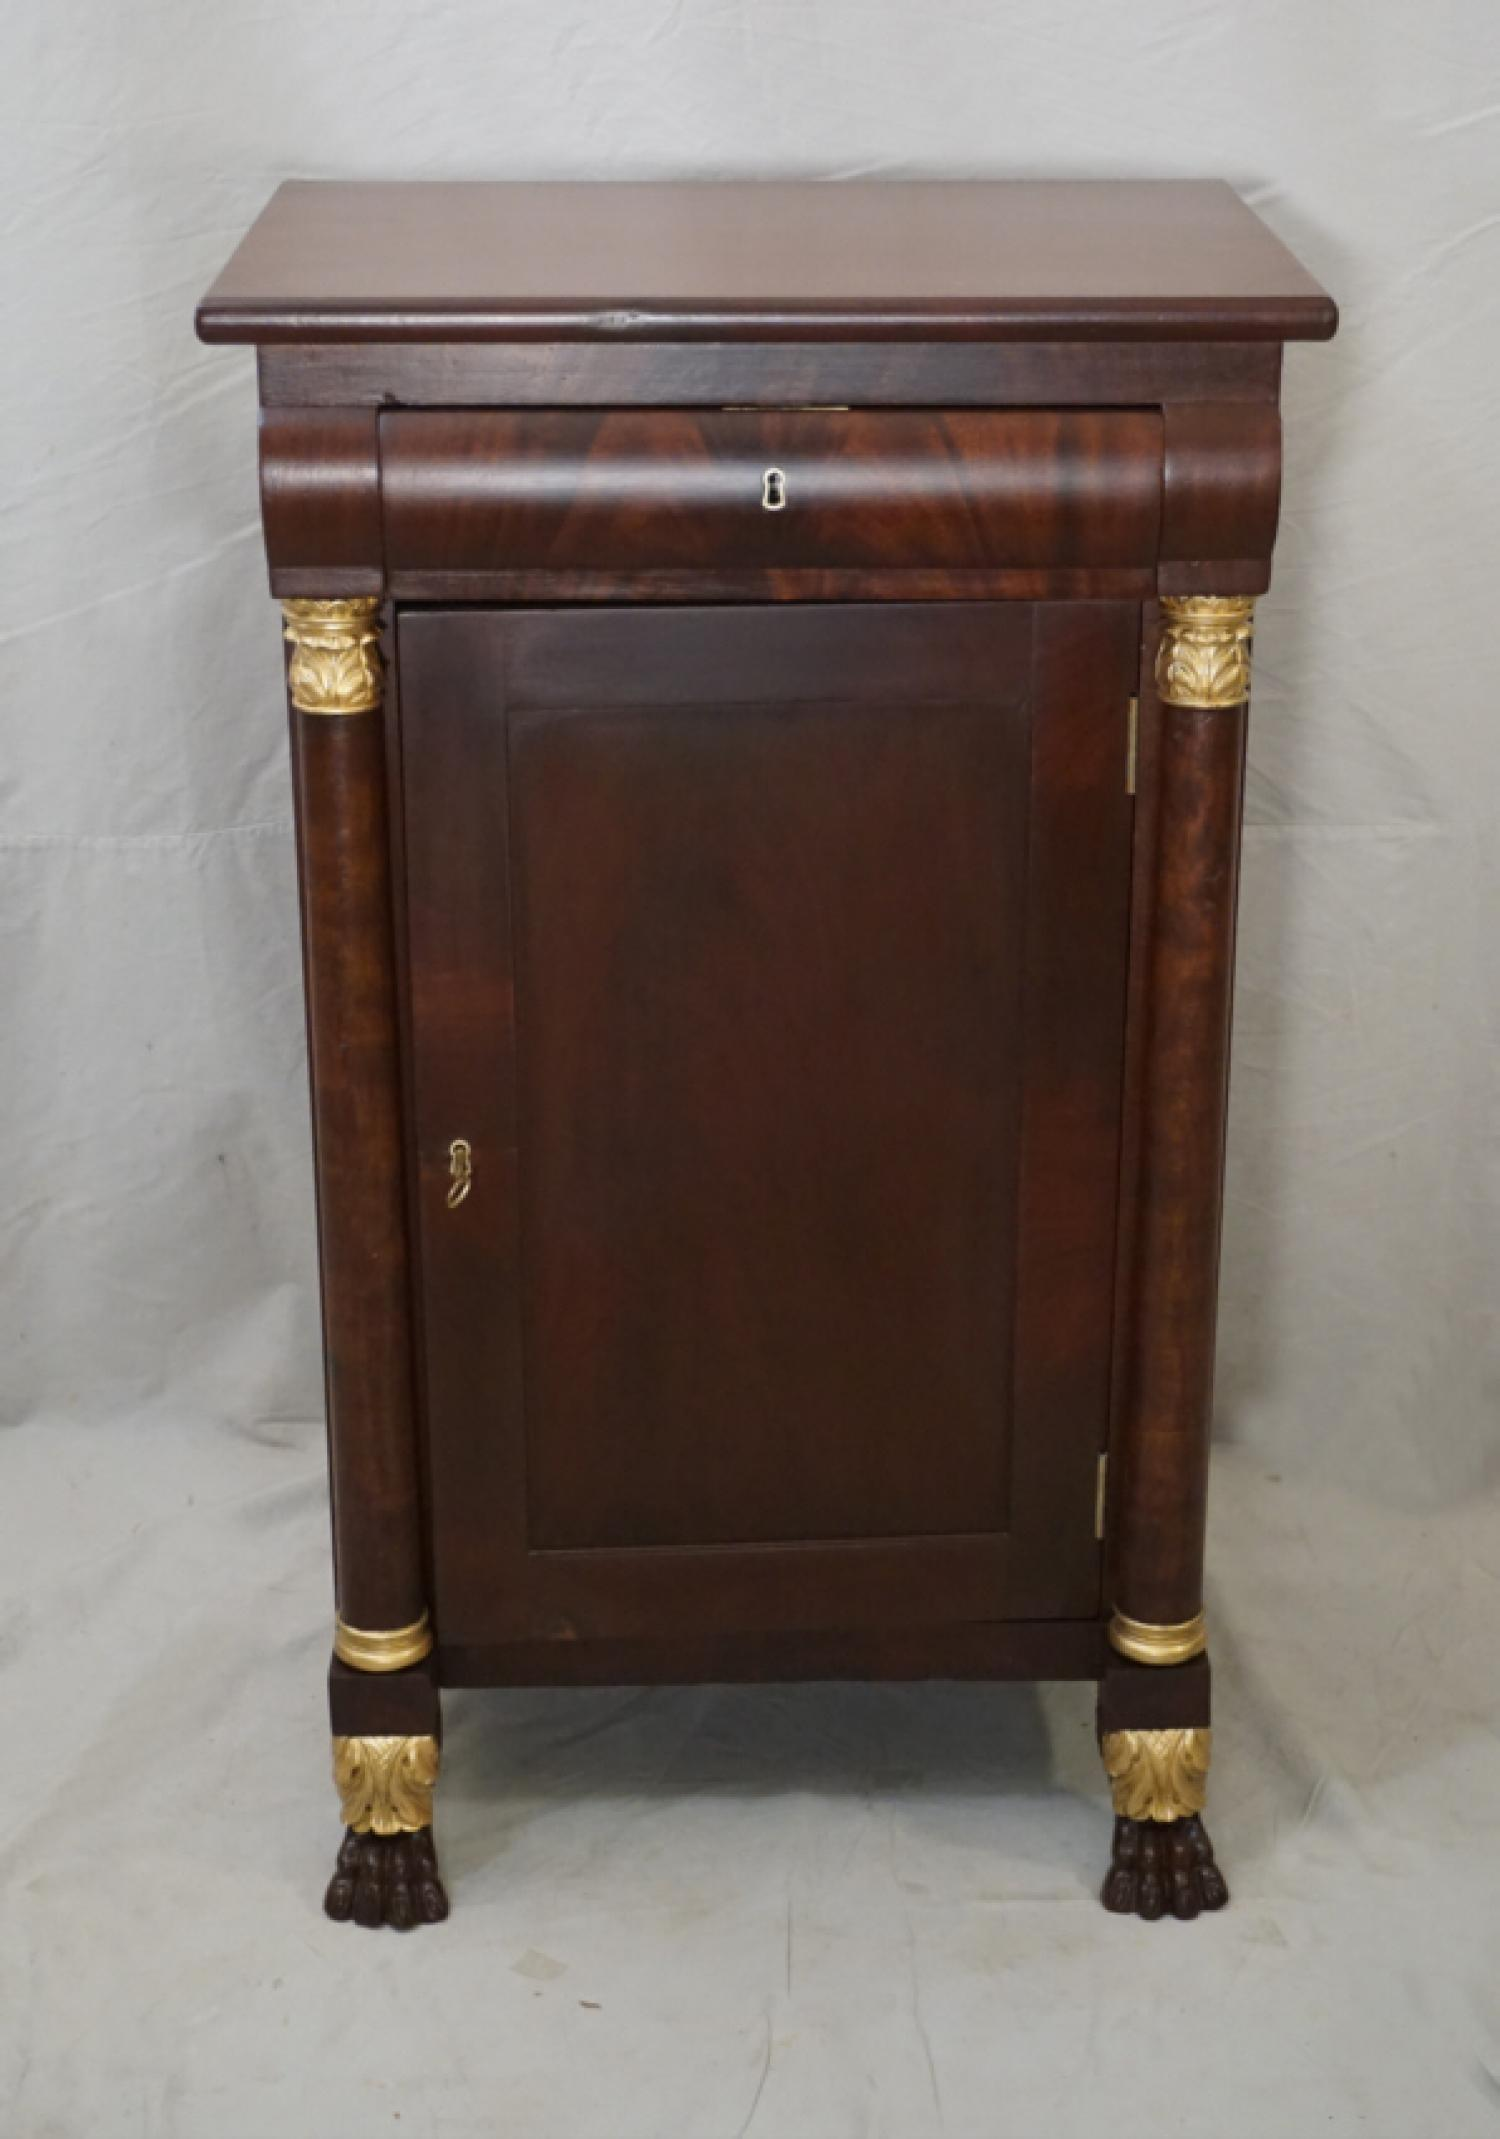 American Federal bedside stand c1825